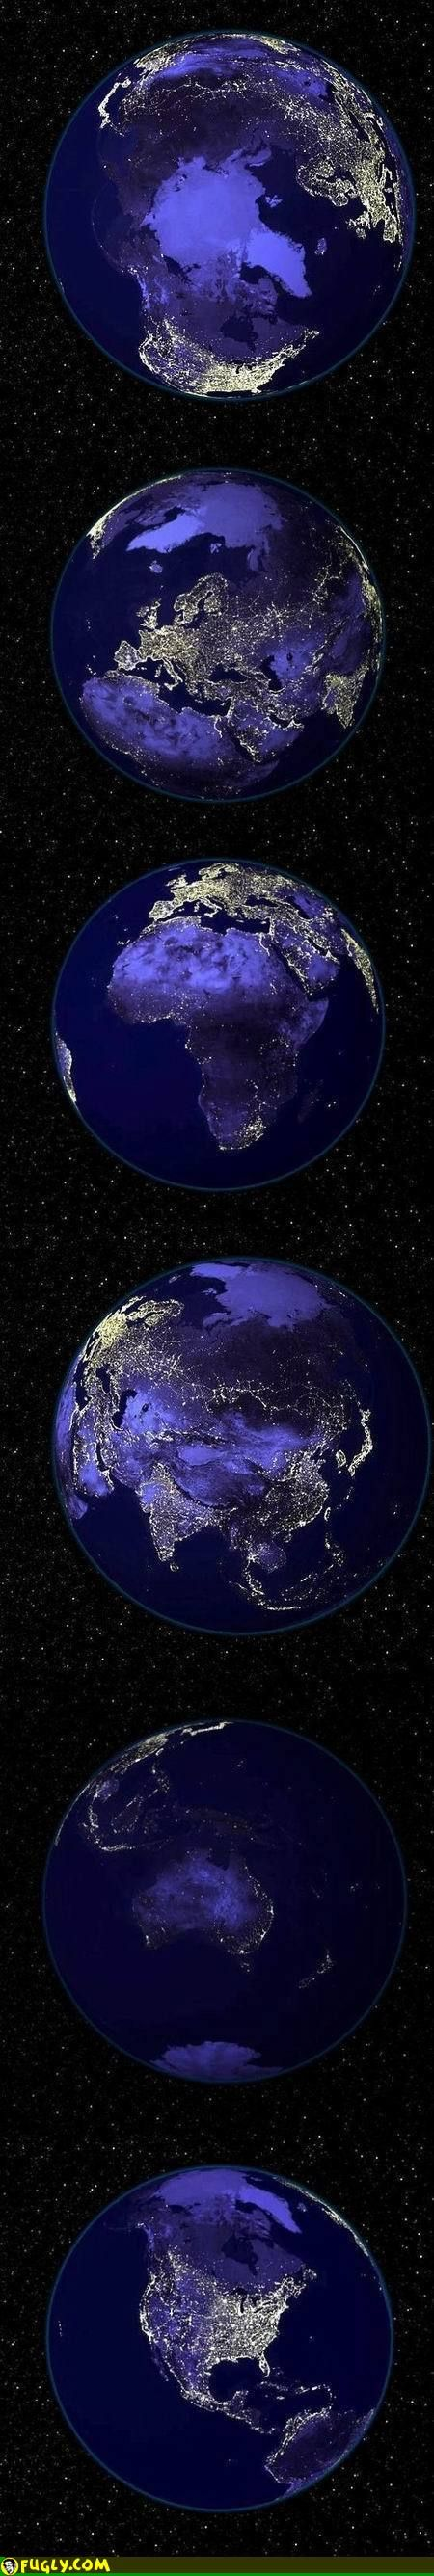 Planet earth at night.